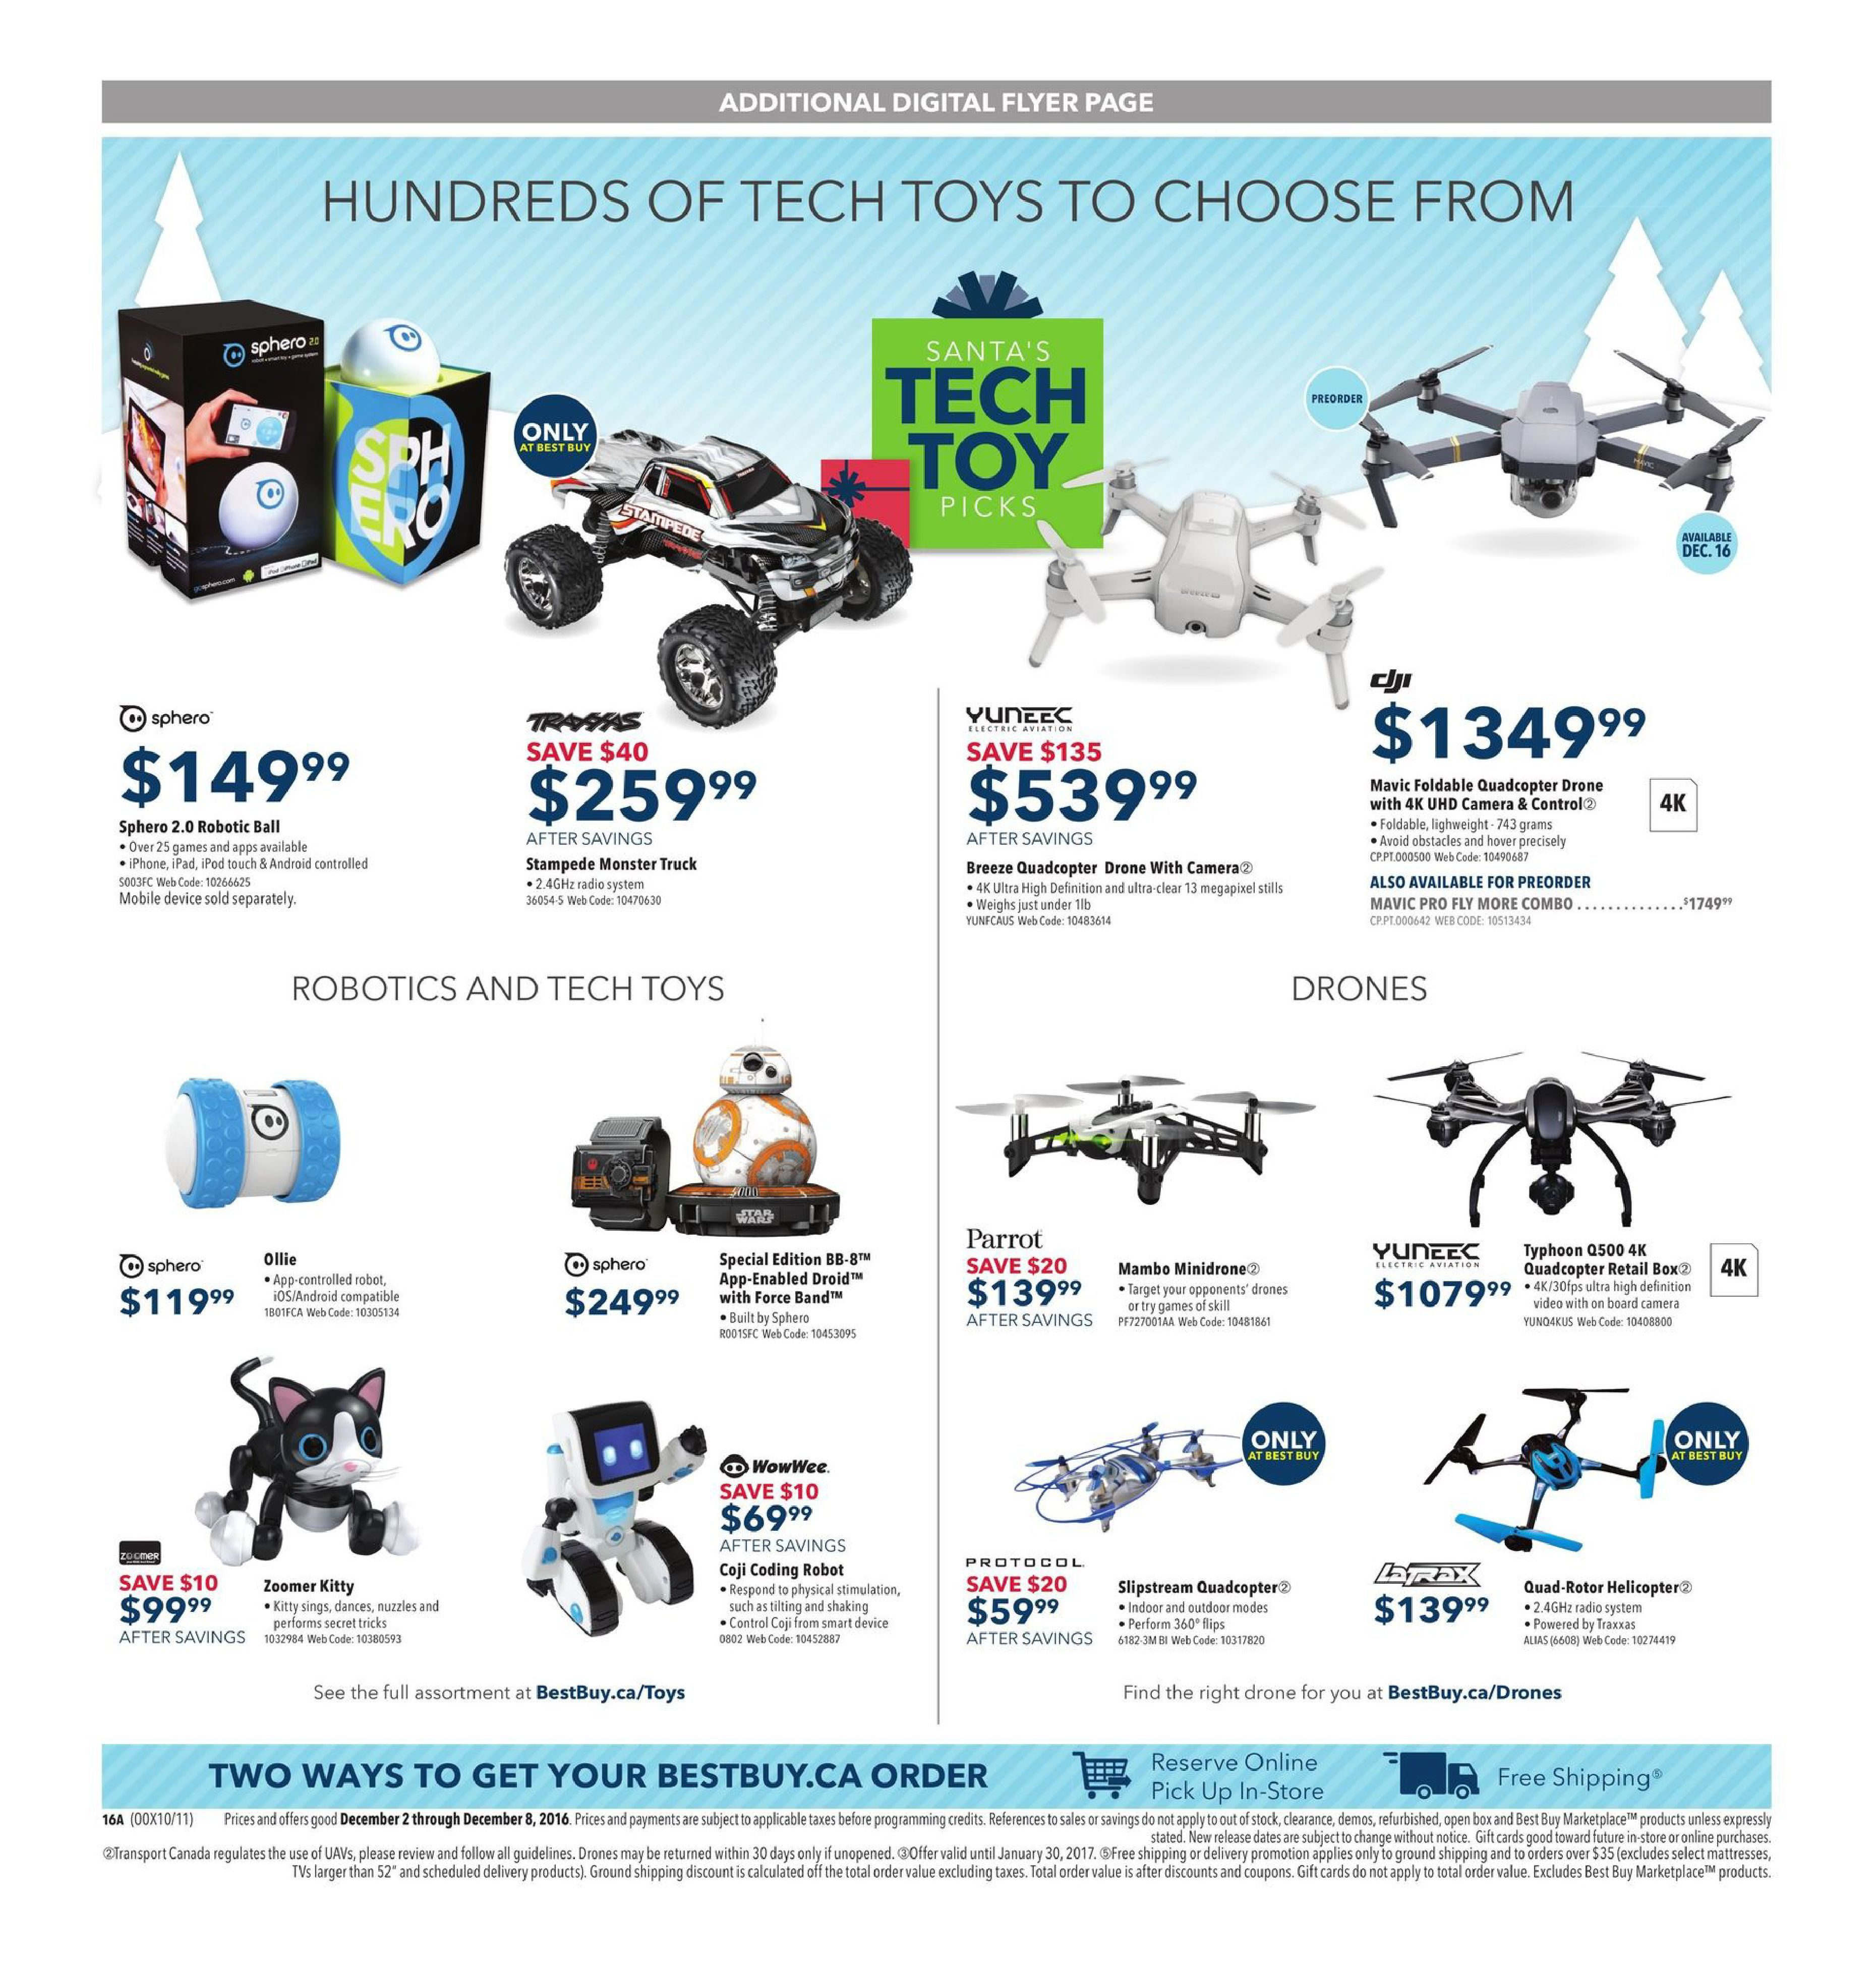 Best Buy Weekly Flyer Wrap Up 4k Give Four Times The Imageup To 100w Inverter 12 V 220v Circuit Homepage Excitement Dec 2 8